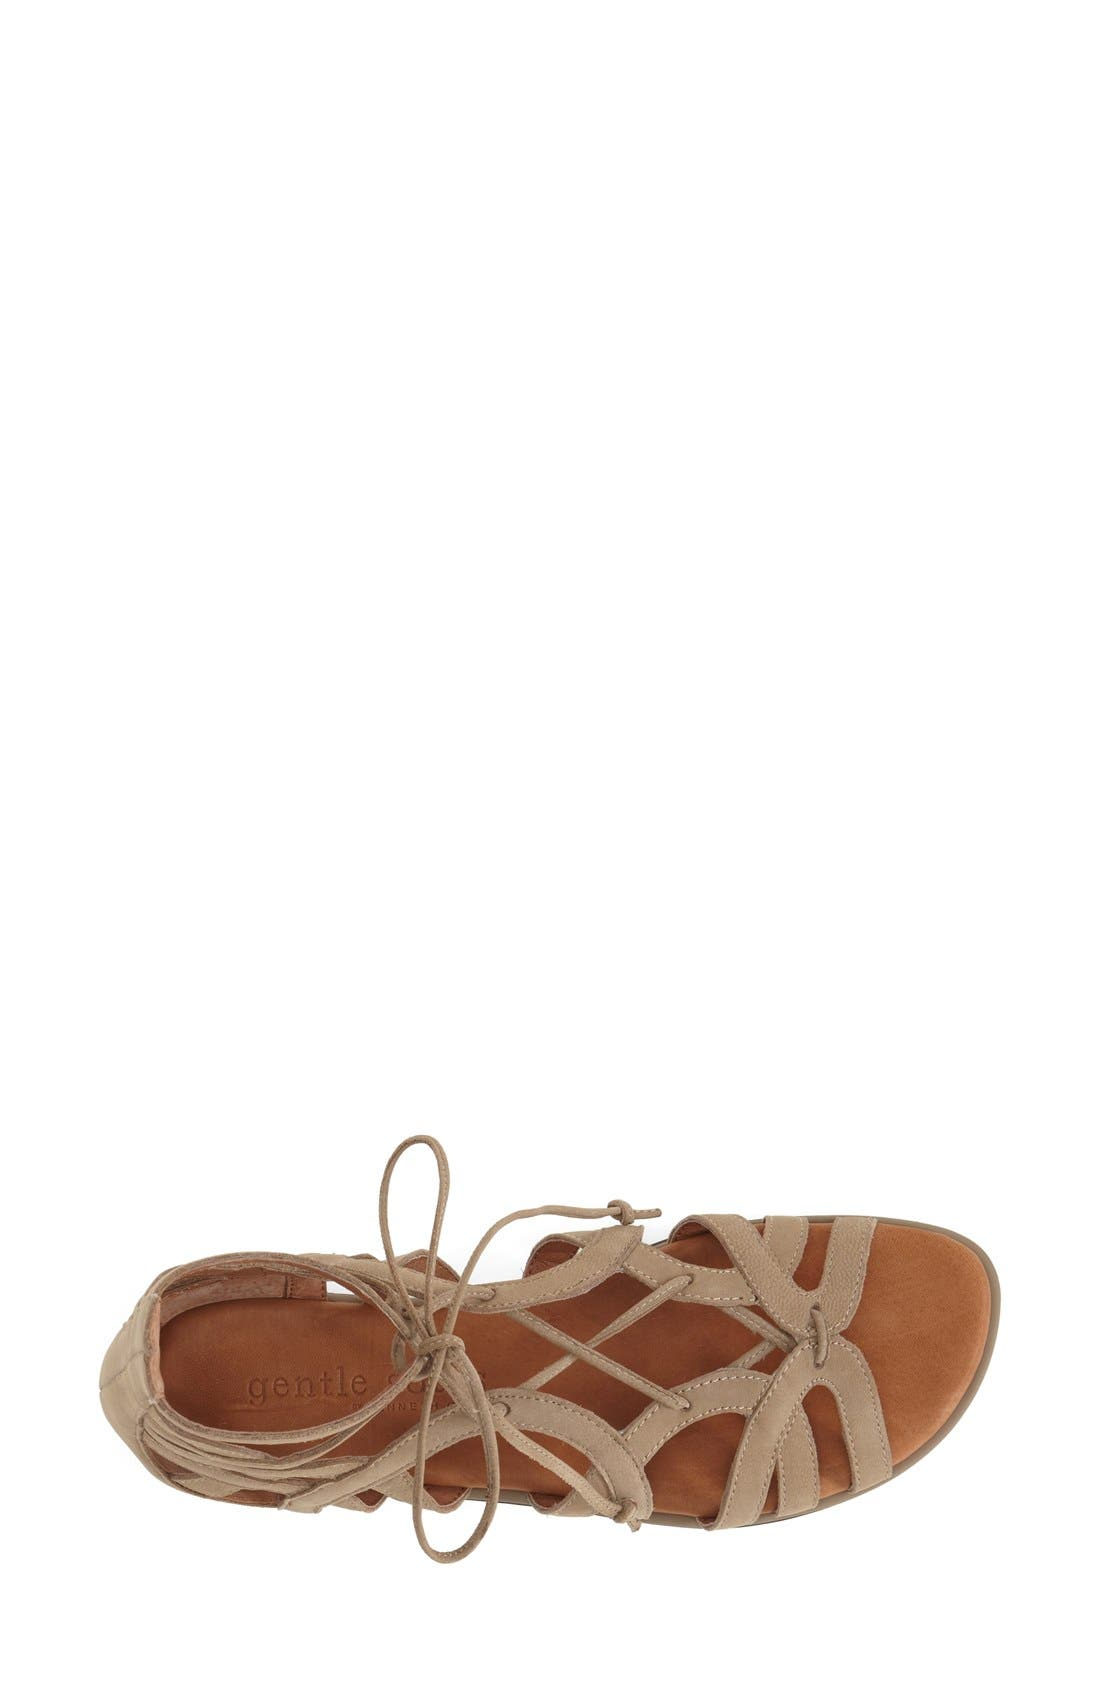 GENTLE SOULS BY KENNETH COLE, 'Break My Heart 3' Cage Sandal, Alternate thumbnail 3, color, TAUPE SUEDE